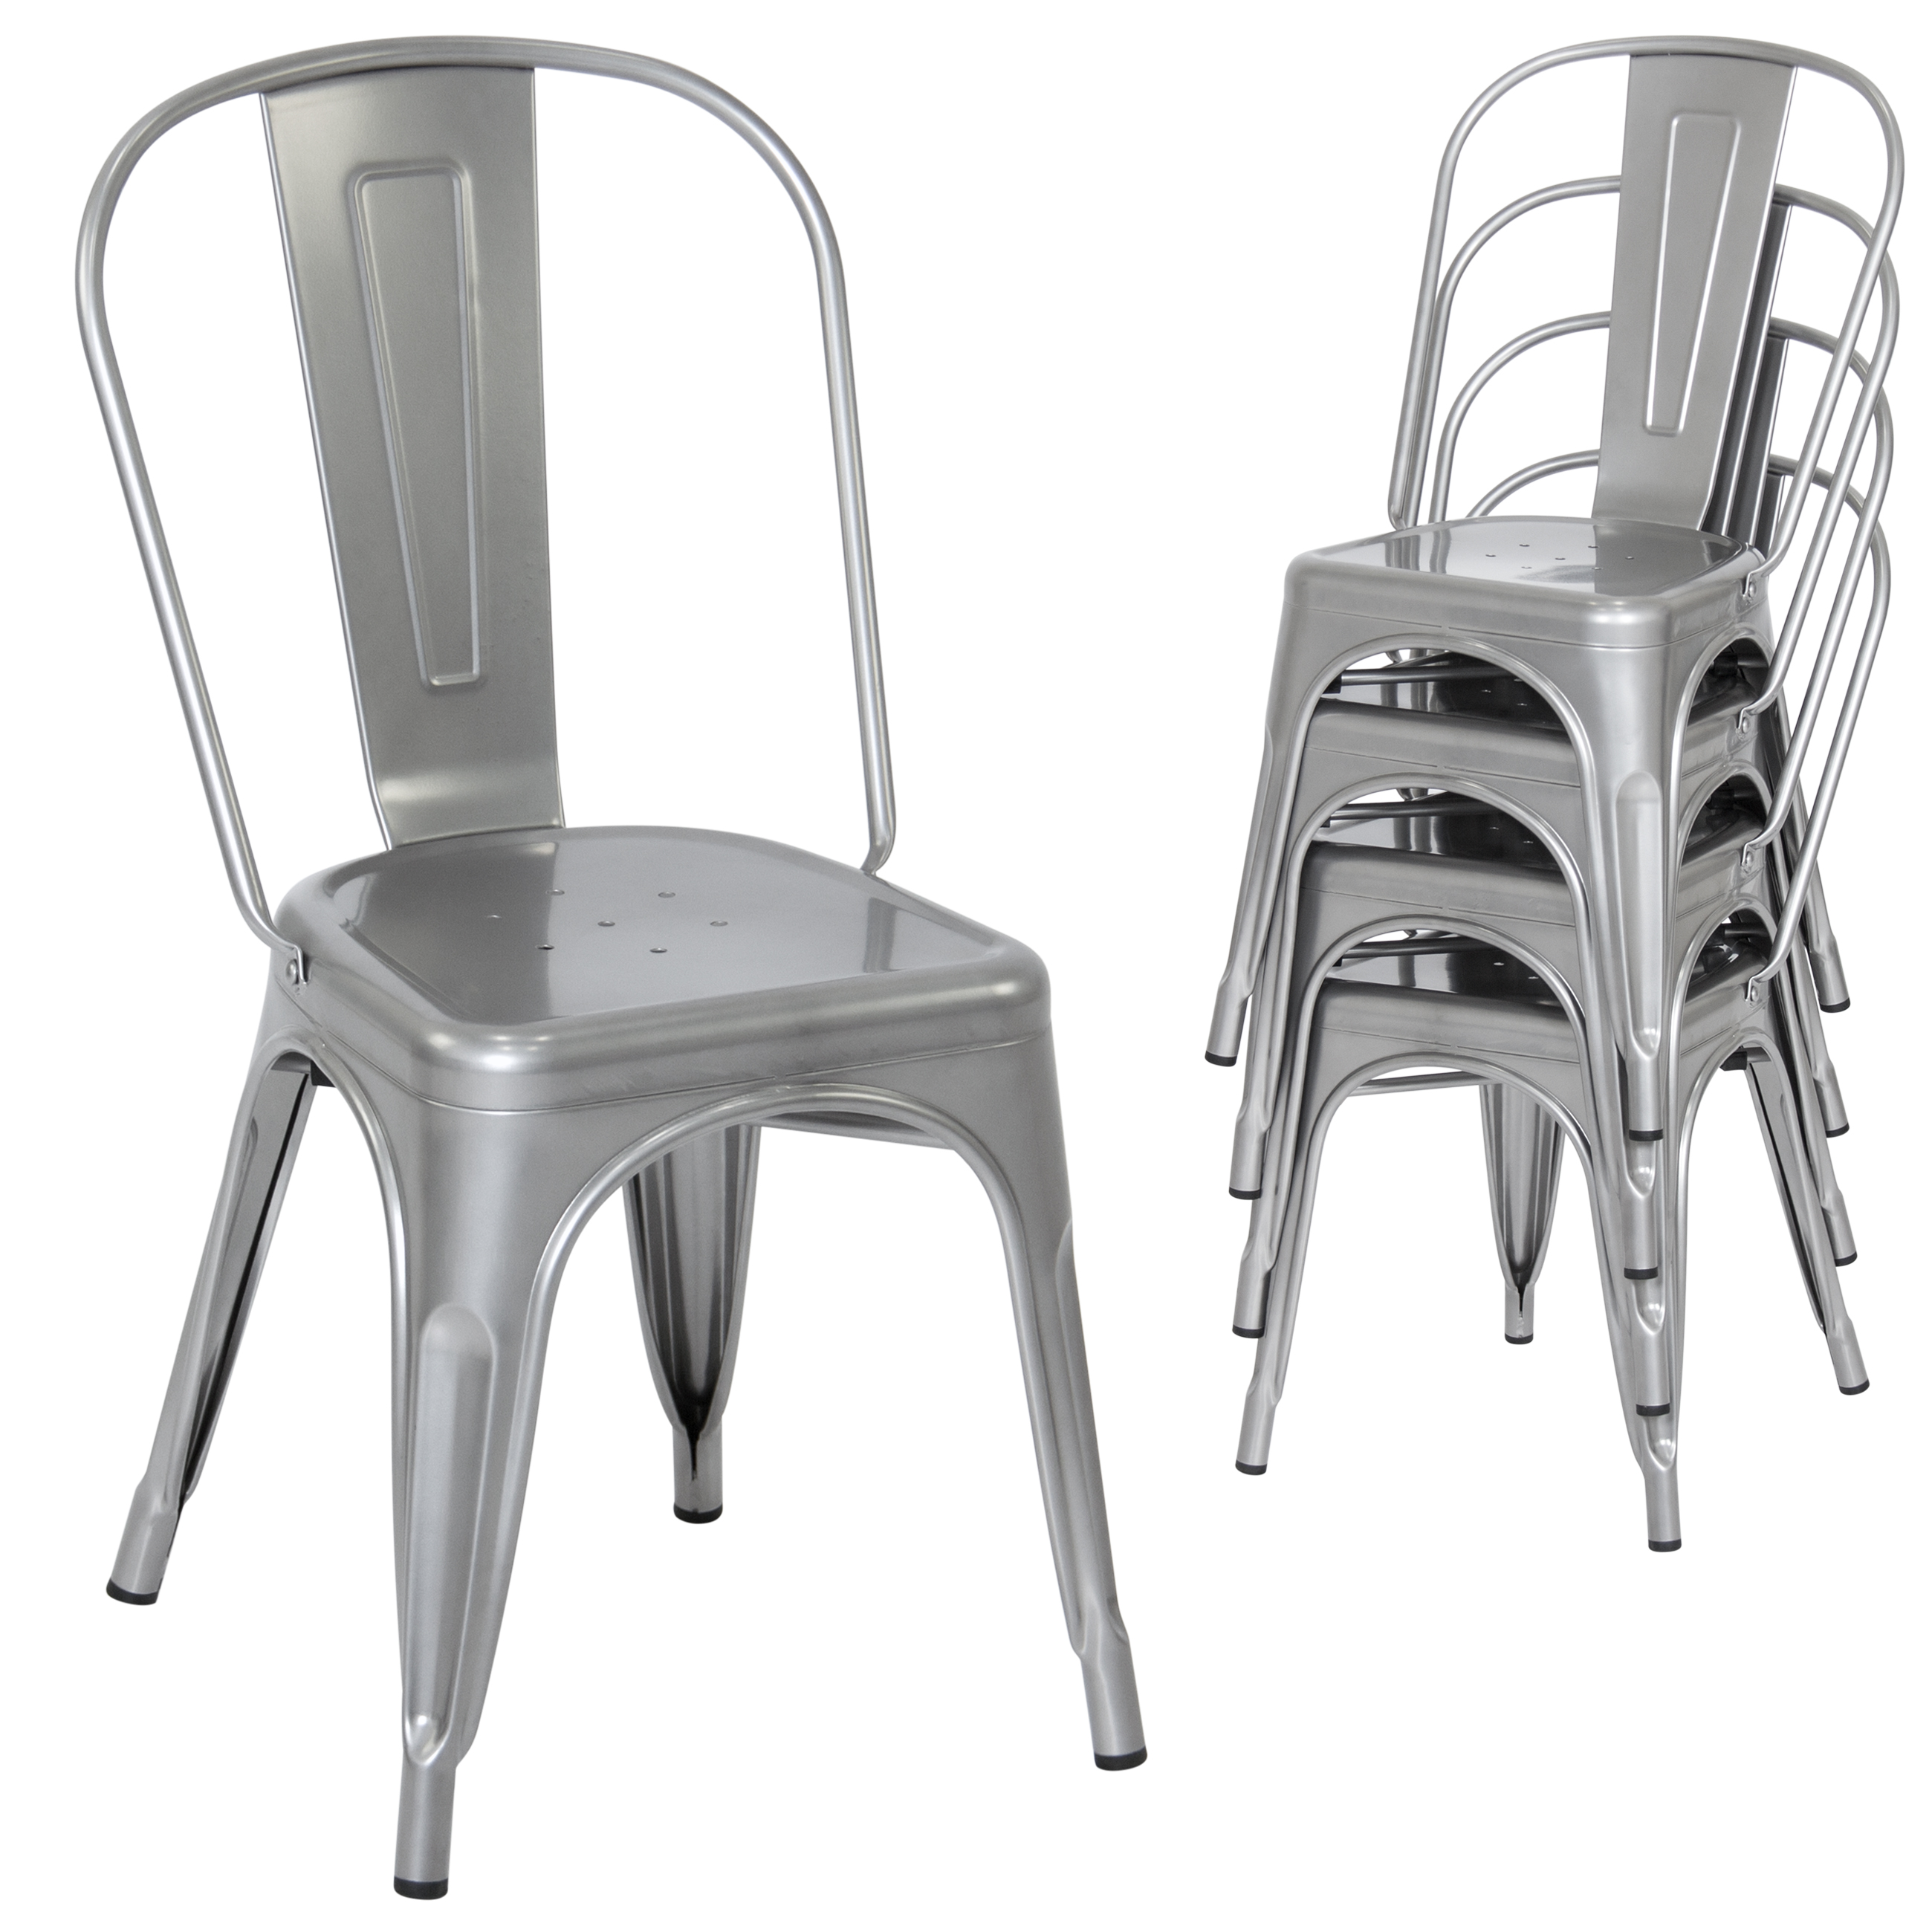 metal stacking chairs outdoor antique windsor chair best choice products set of 4 modern industrial dining silver walmart com